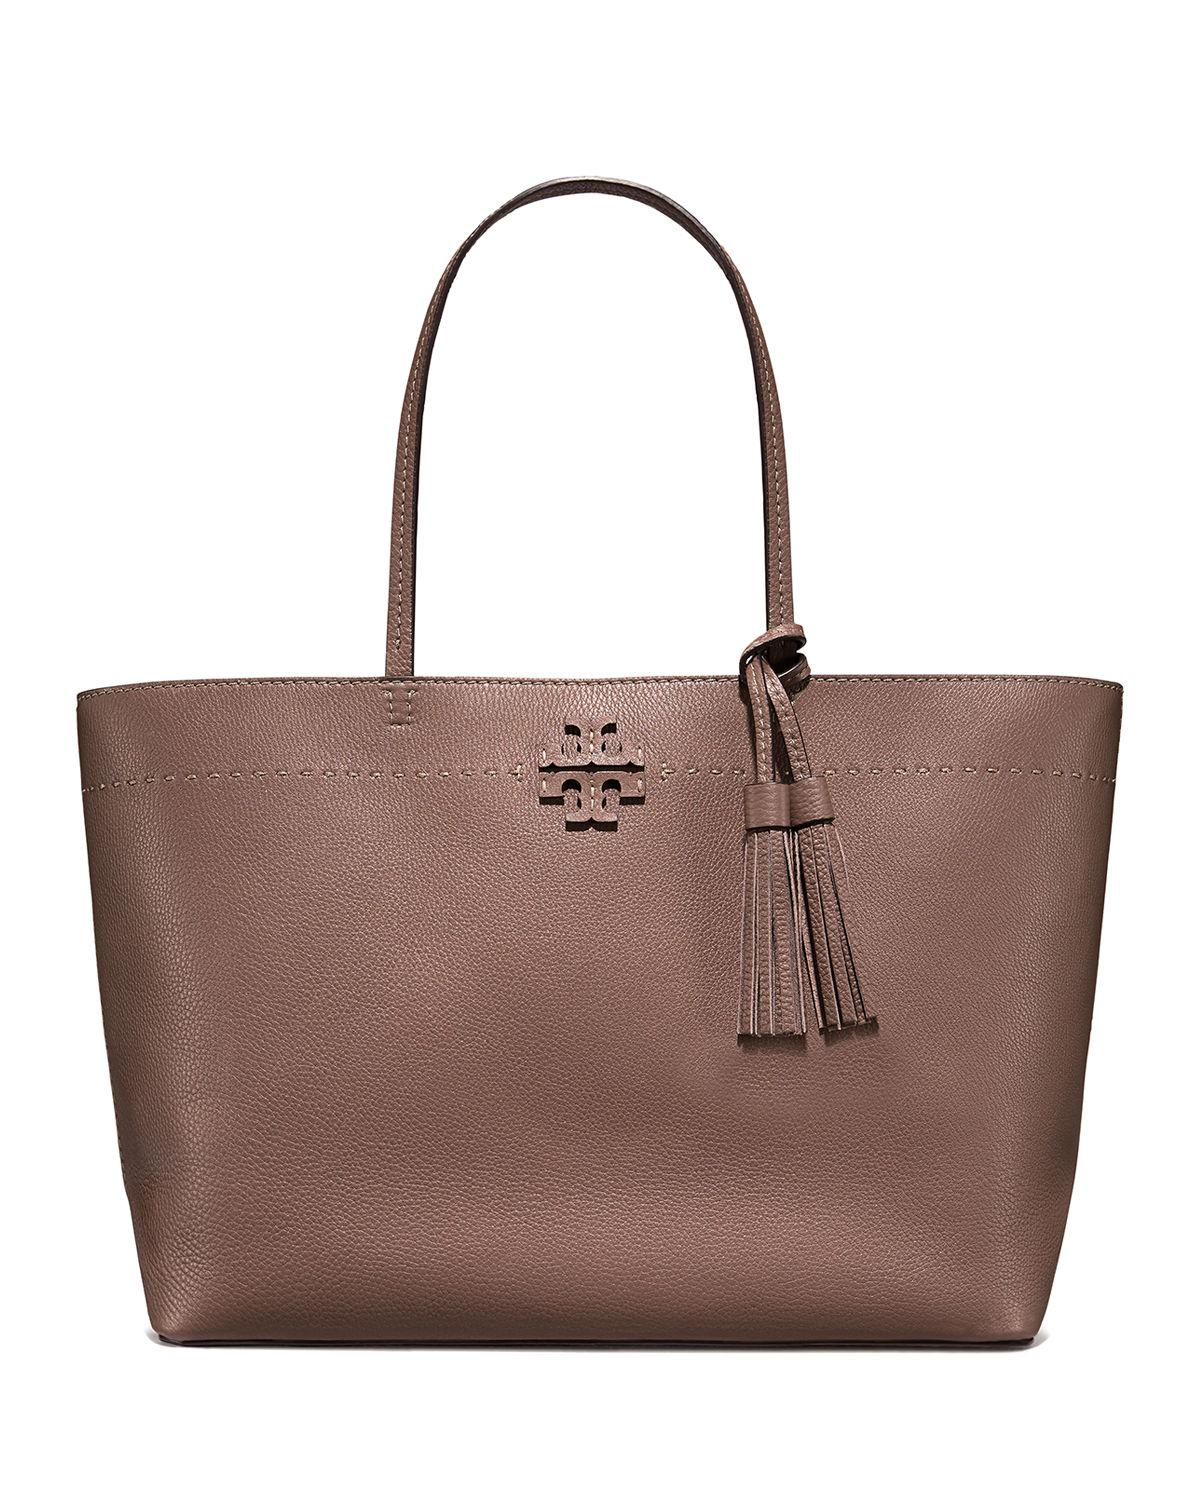 757a2737ce8c Tory Burch. Women s Mcgraw Pebbled Leather Tote Bag